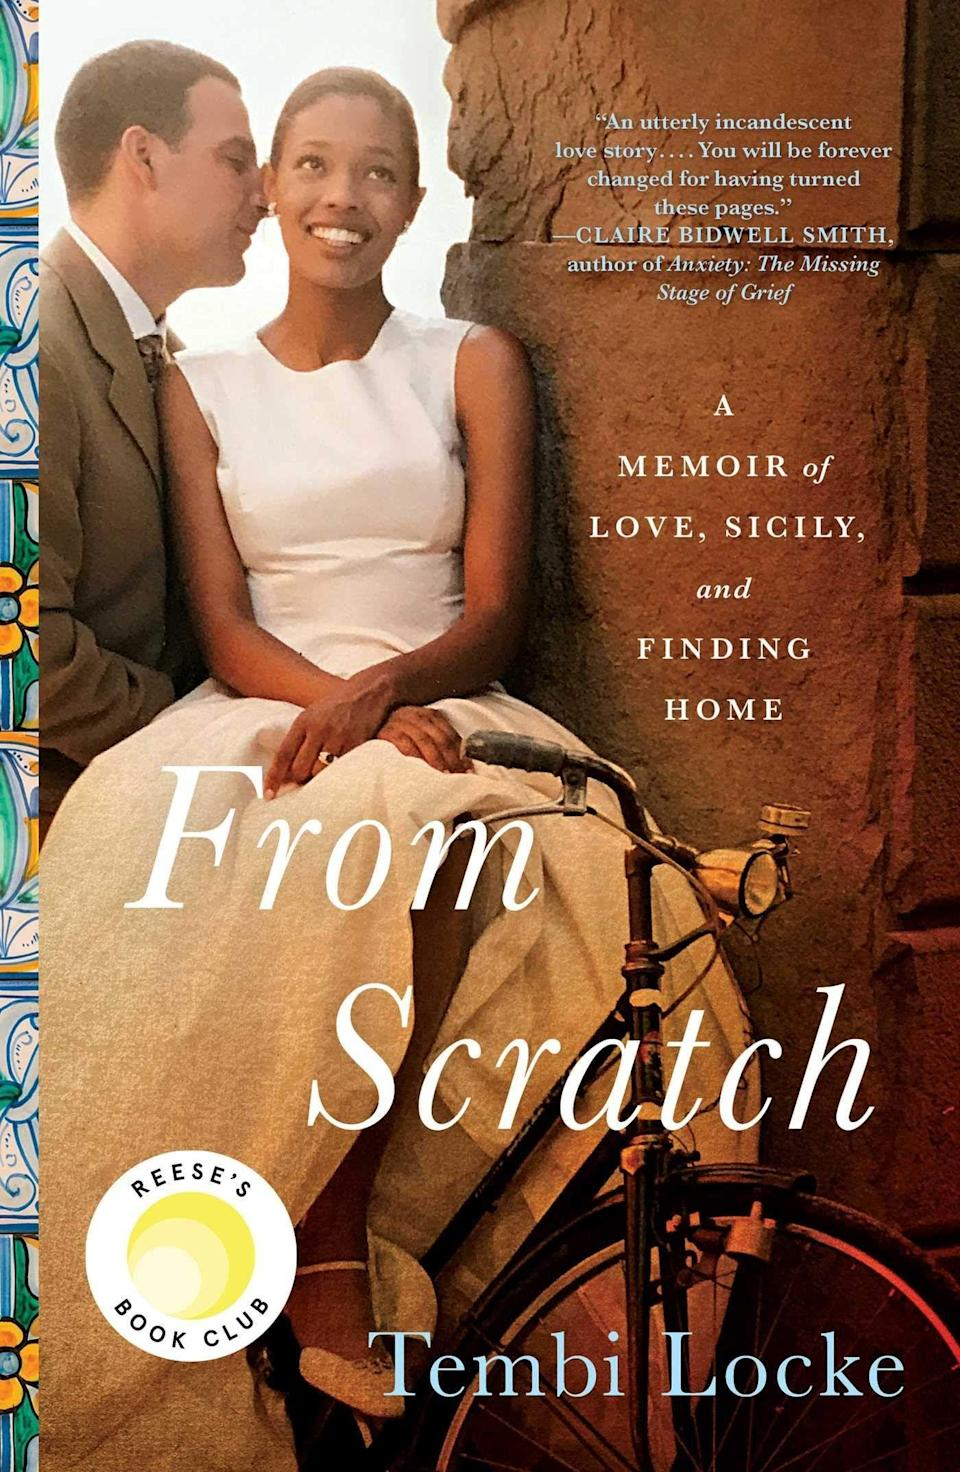 """<p><strong>Simon & Schuster</strong></p><p>bookshop.org</p><p><strong>$15.64</strong></p><p><a href=""""https://go.redirectingat.com?id=74968X1596630&url=https%3A%2F%2Fbookshop.org%2Fbooks%2Ffrom-scratch-a-memoir-of-love-sicily-and-finding-home%2F9781501187667&sref=https%3A%2F%2Fwww.cosmopolitan.com%2Fentertainment%2Fbooks%2Fg33958606%2Freese-witherspoon-book-club-list%2F"""" rel=""""nofollow noopener"""" target=""""_blank"""" data-ylk=""""slk:Shop Now"""" class=""""link rapid-noclick-resp"""">Shop Now</a></p><p>In this poignant memoir, you follow Tembi's journey of love and heartbreaking loss after her husband, Saro, passes away, and she has to rely on the support of three generations of women. Her story is a reminder that you can overcome every curveball life throws at you.</p><p><strong>From Reese:</strong> <em>""""She learns to heal in the most beautiful way—through the support of three generations of women—and yes, there's Italian food. Lots and lots of Italian food!""""</em></p>"""